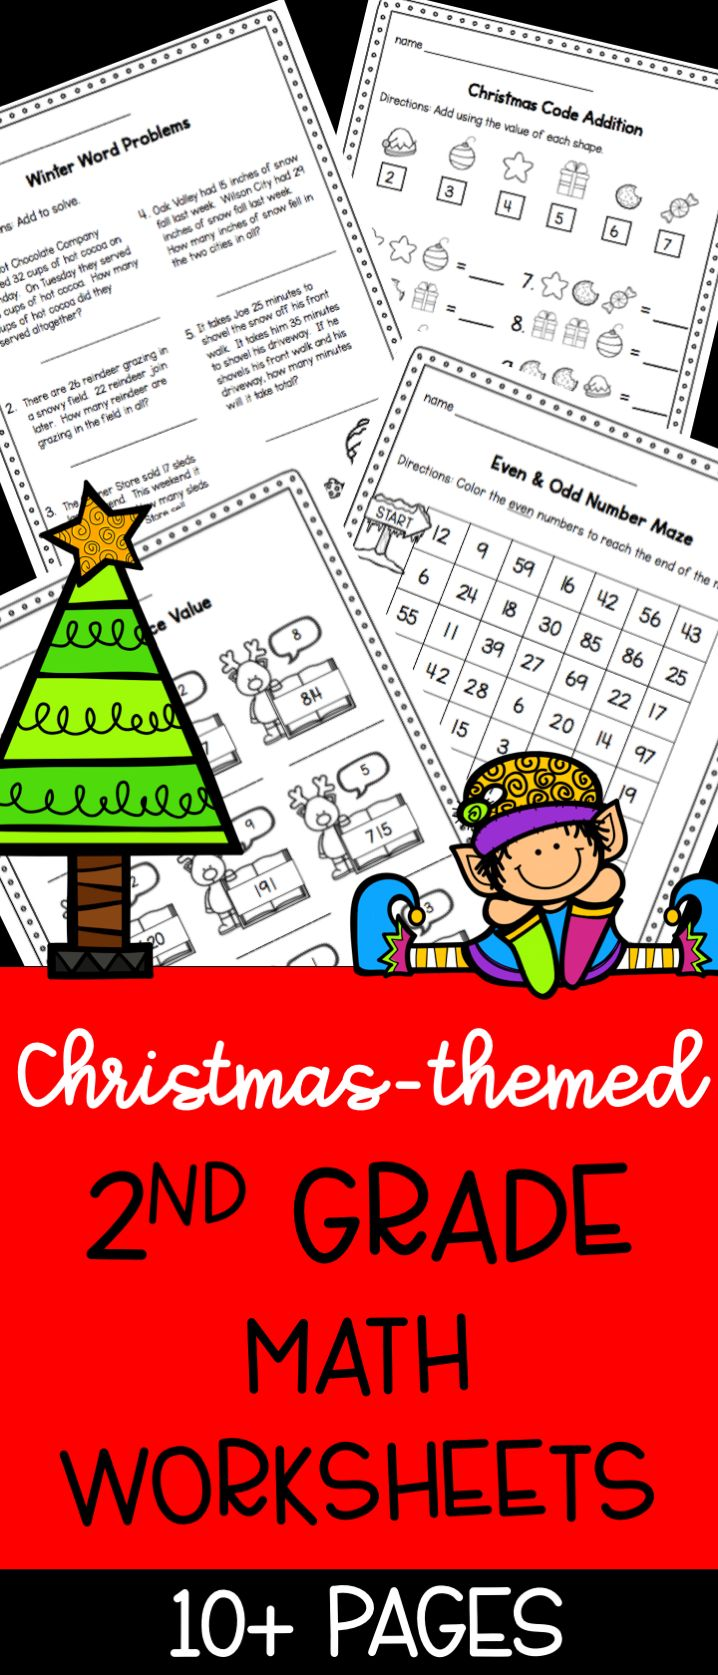 Math skill practice pages for the holiday season! This resource includes no prep worksheets for a variety of 2nd grade math standards. Perfect for math centers/stations, independent practice, skill review, early finishers, homework, or sub plans.